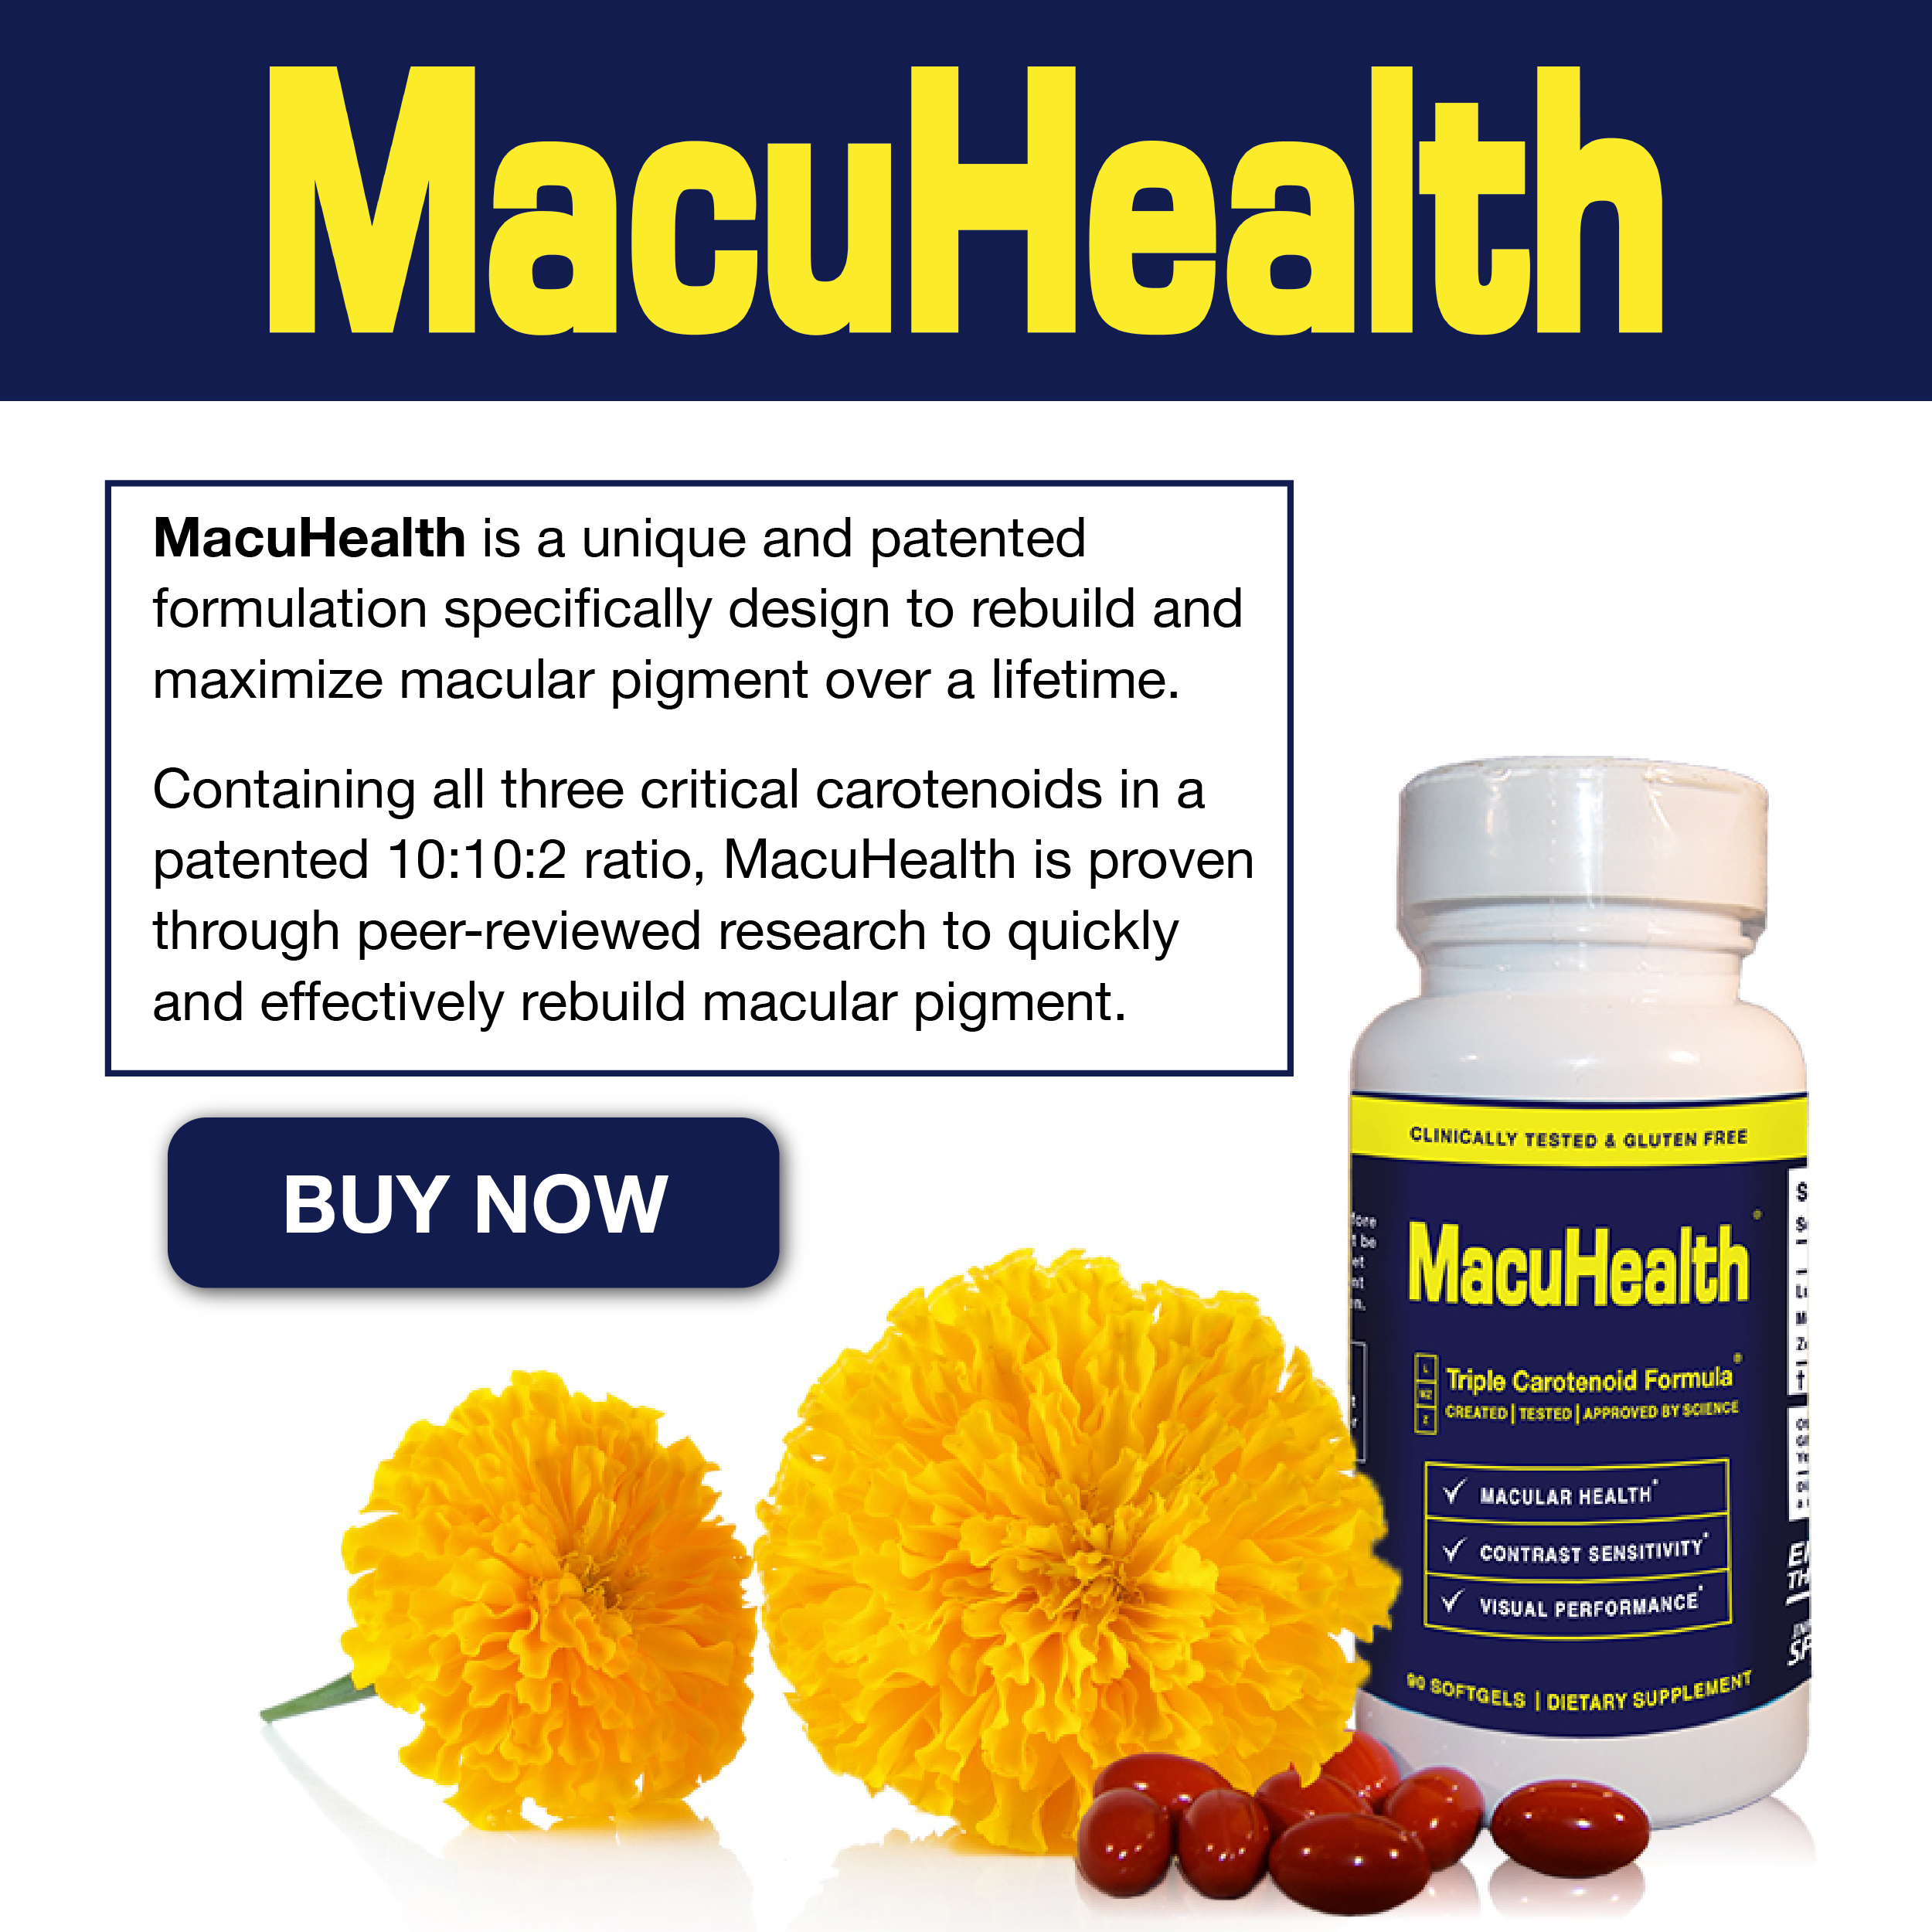 MacuHealth Carotenoid Supplements